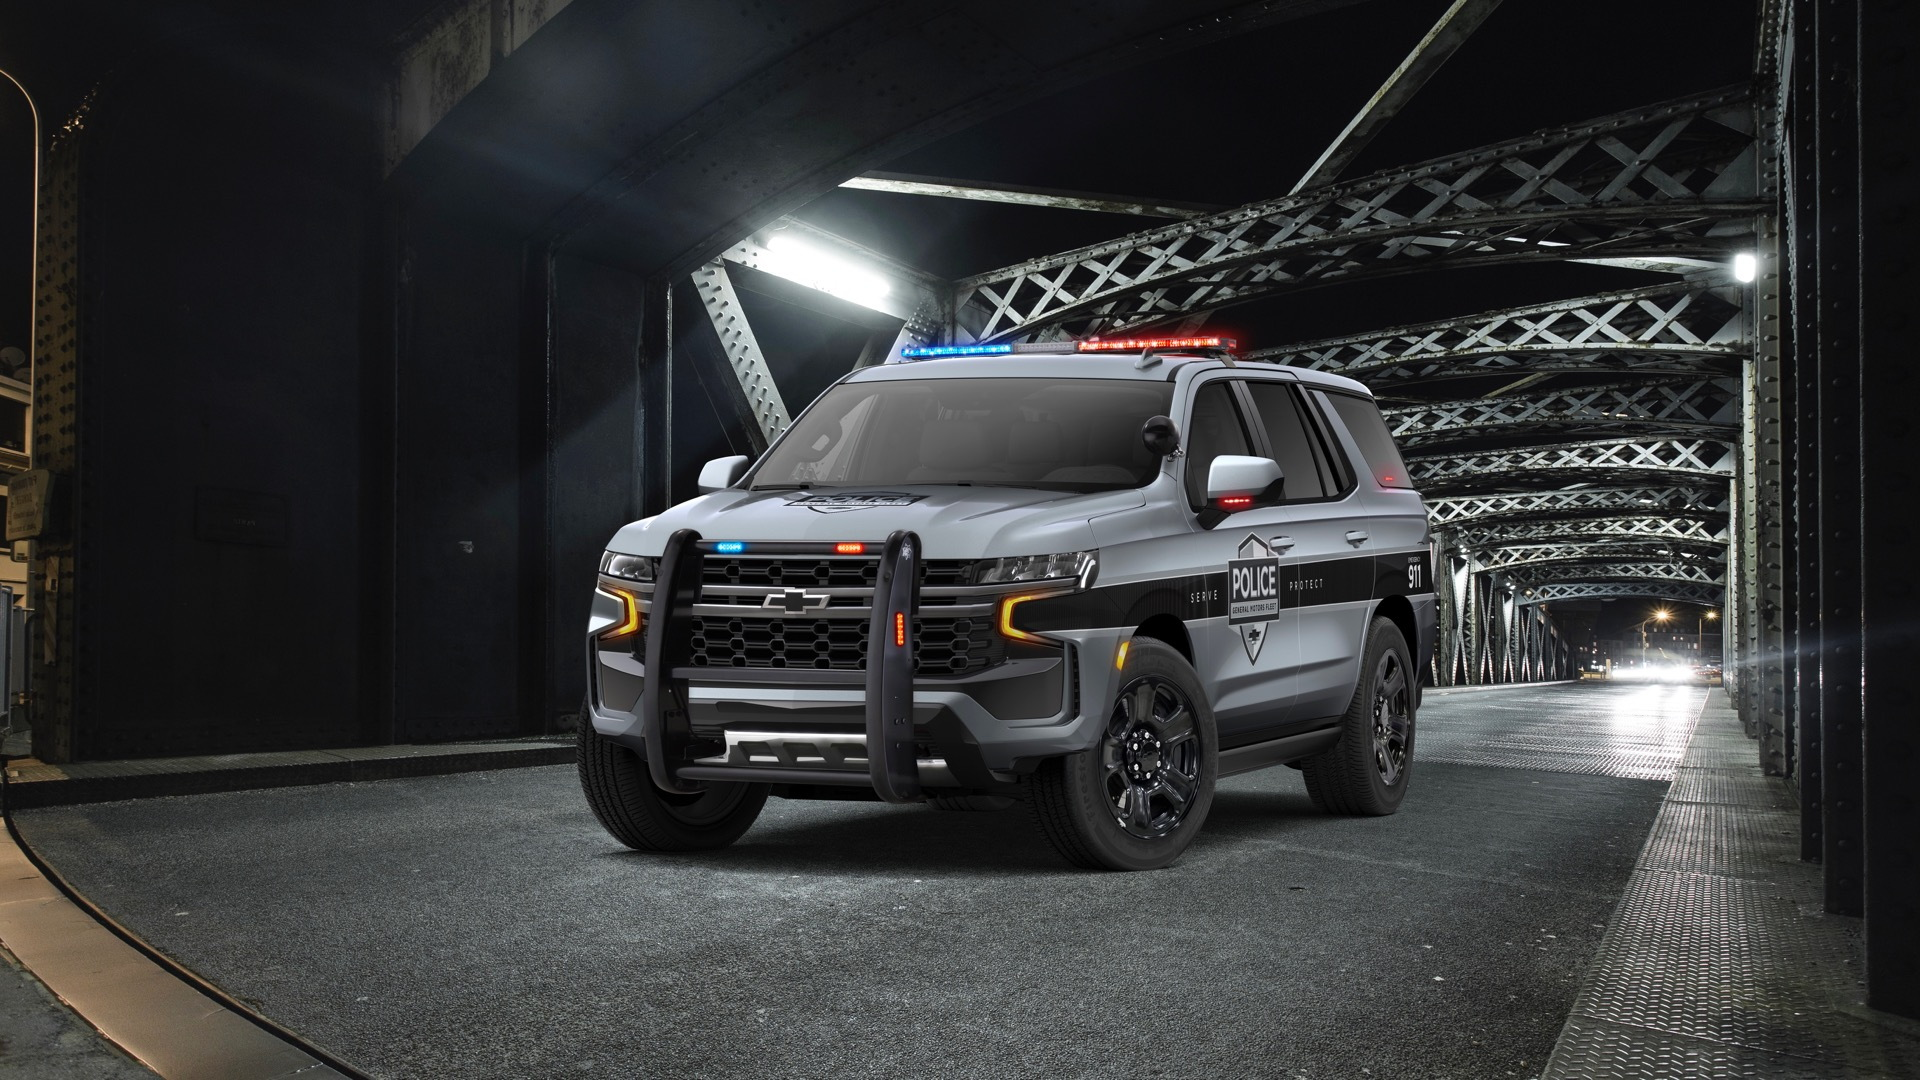 2021 Chevrolet Tahoe Police Pursuit Vehicle